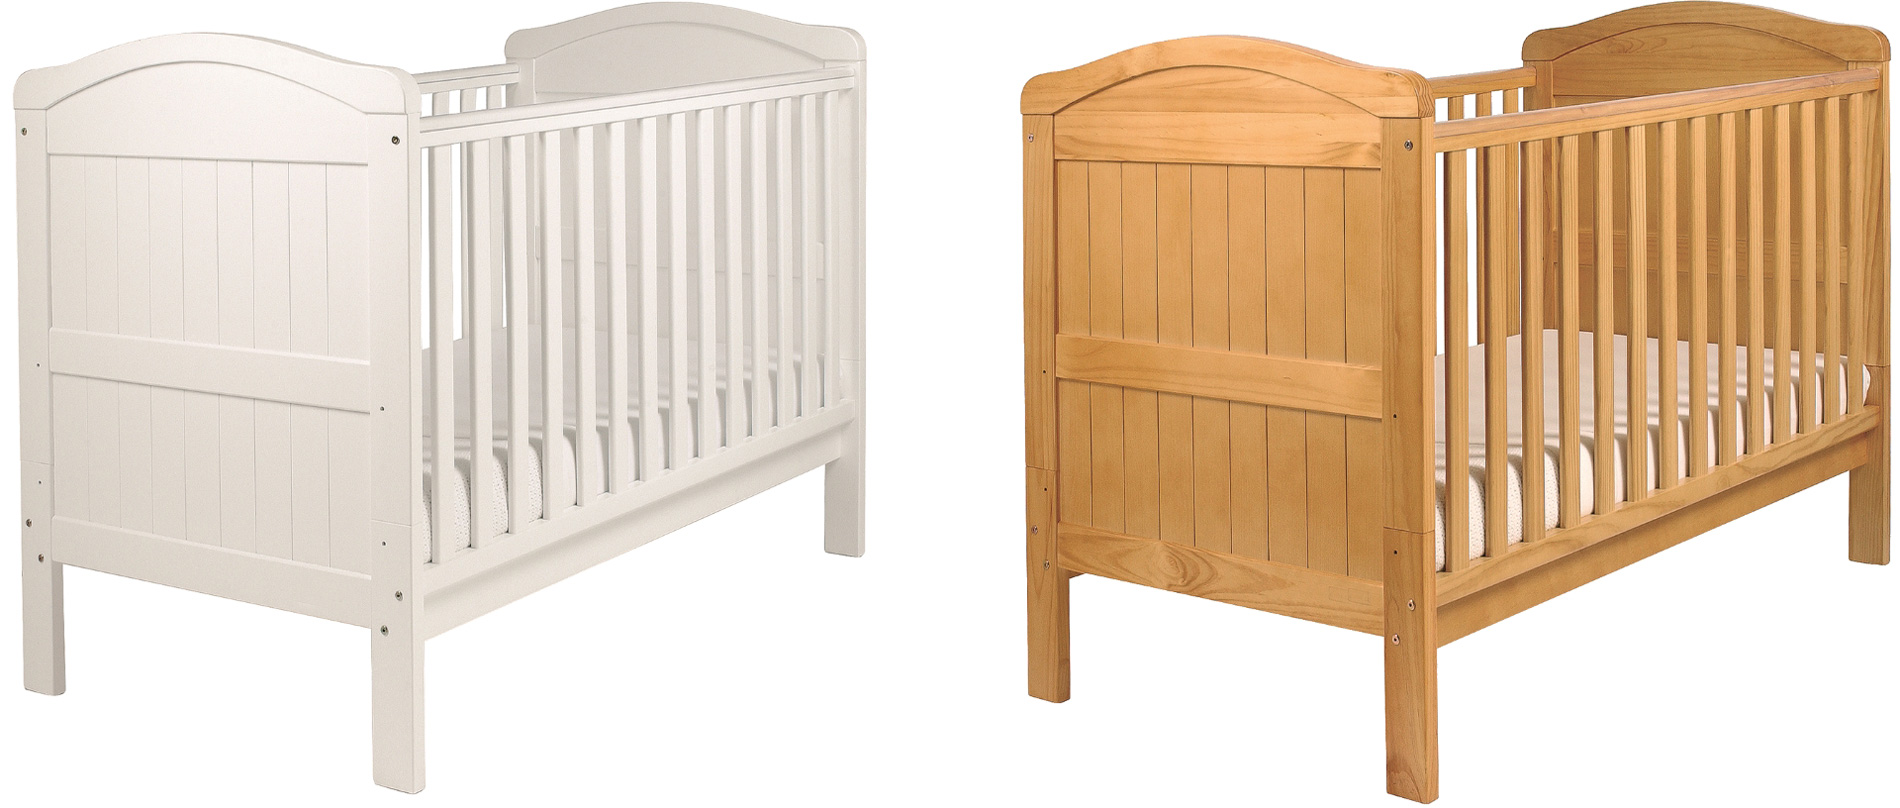 East Coast Country Cot Bed Solid Pine Baby Child Toddler Nursery Furniture BNIB